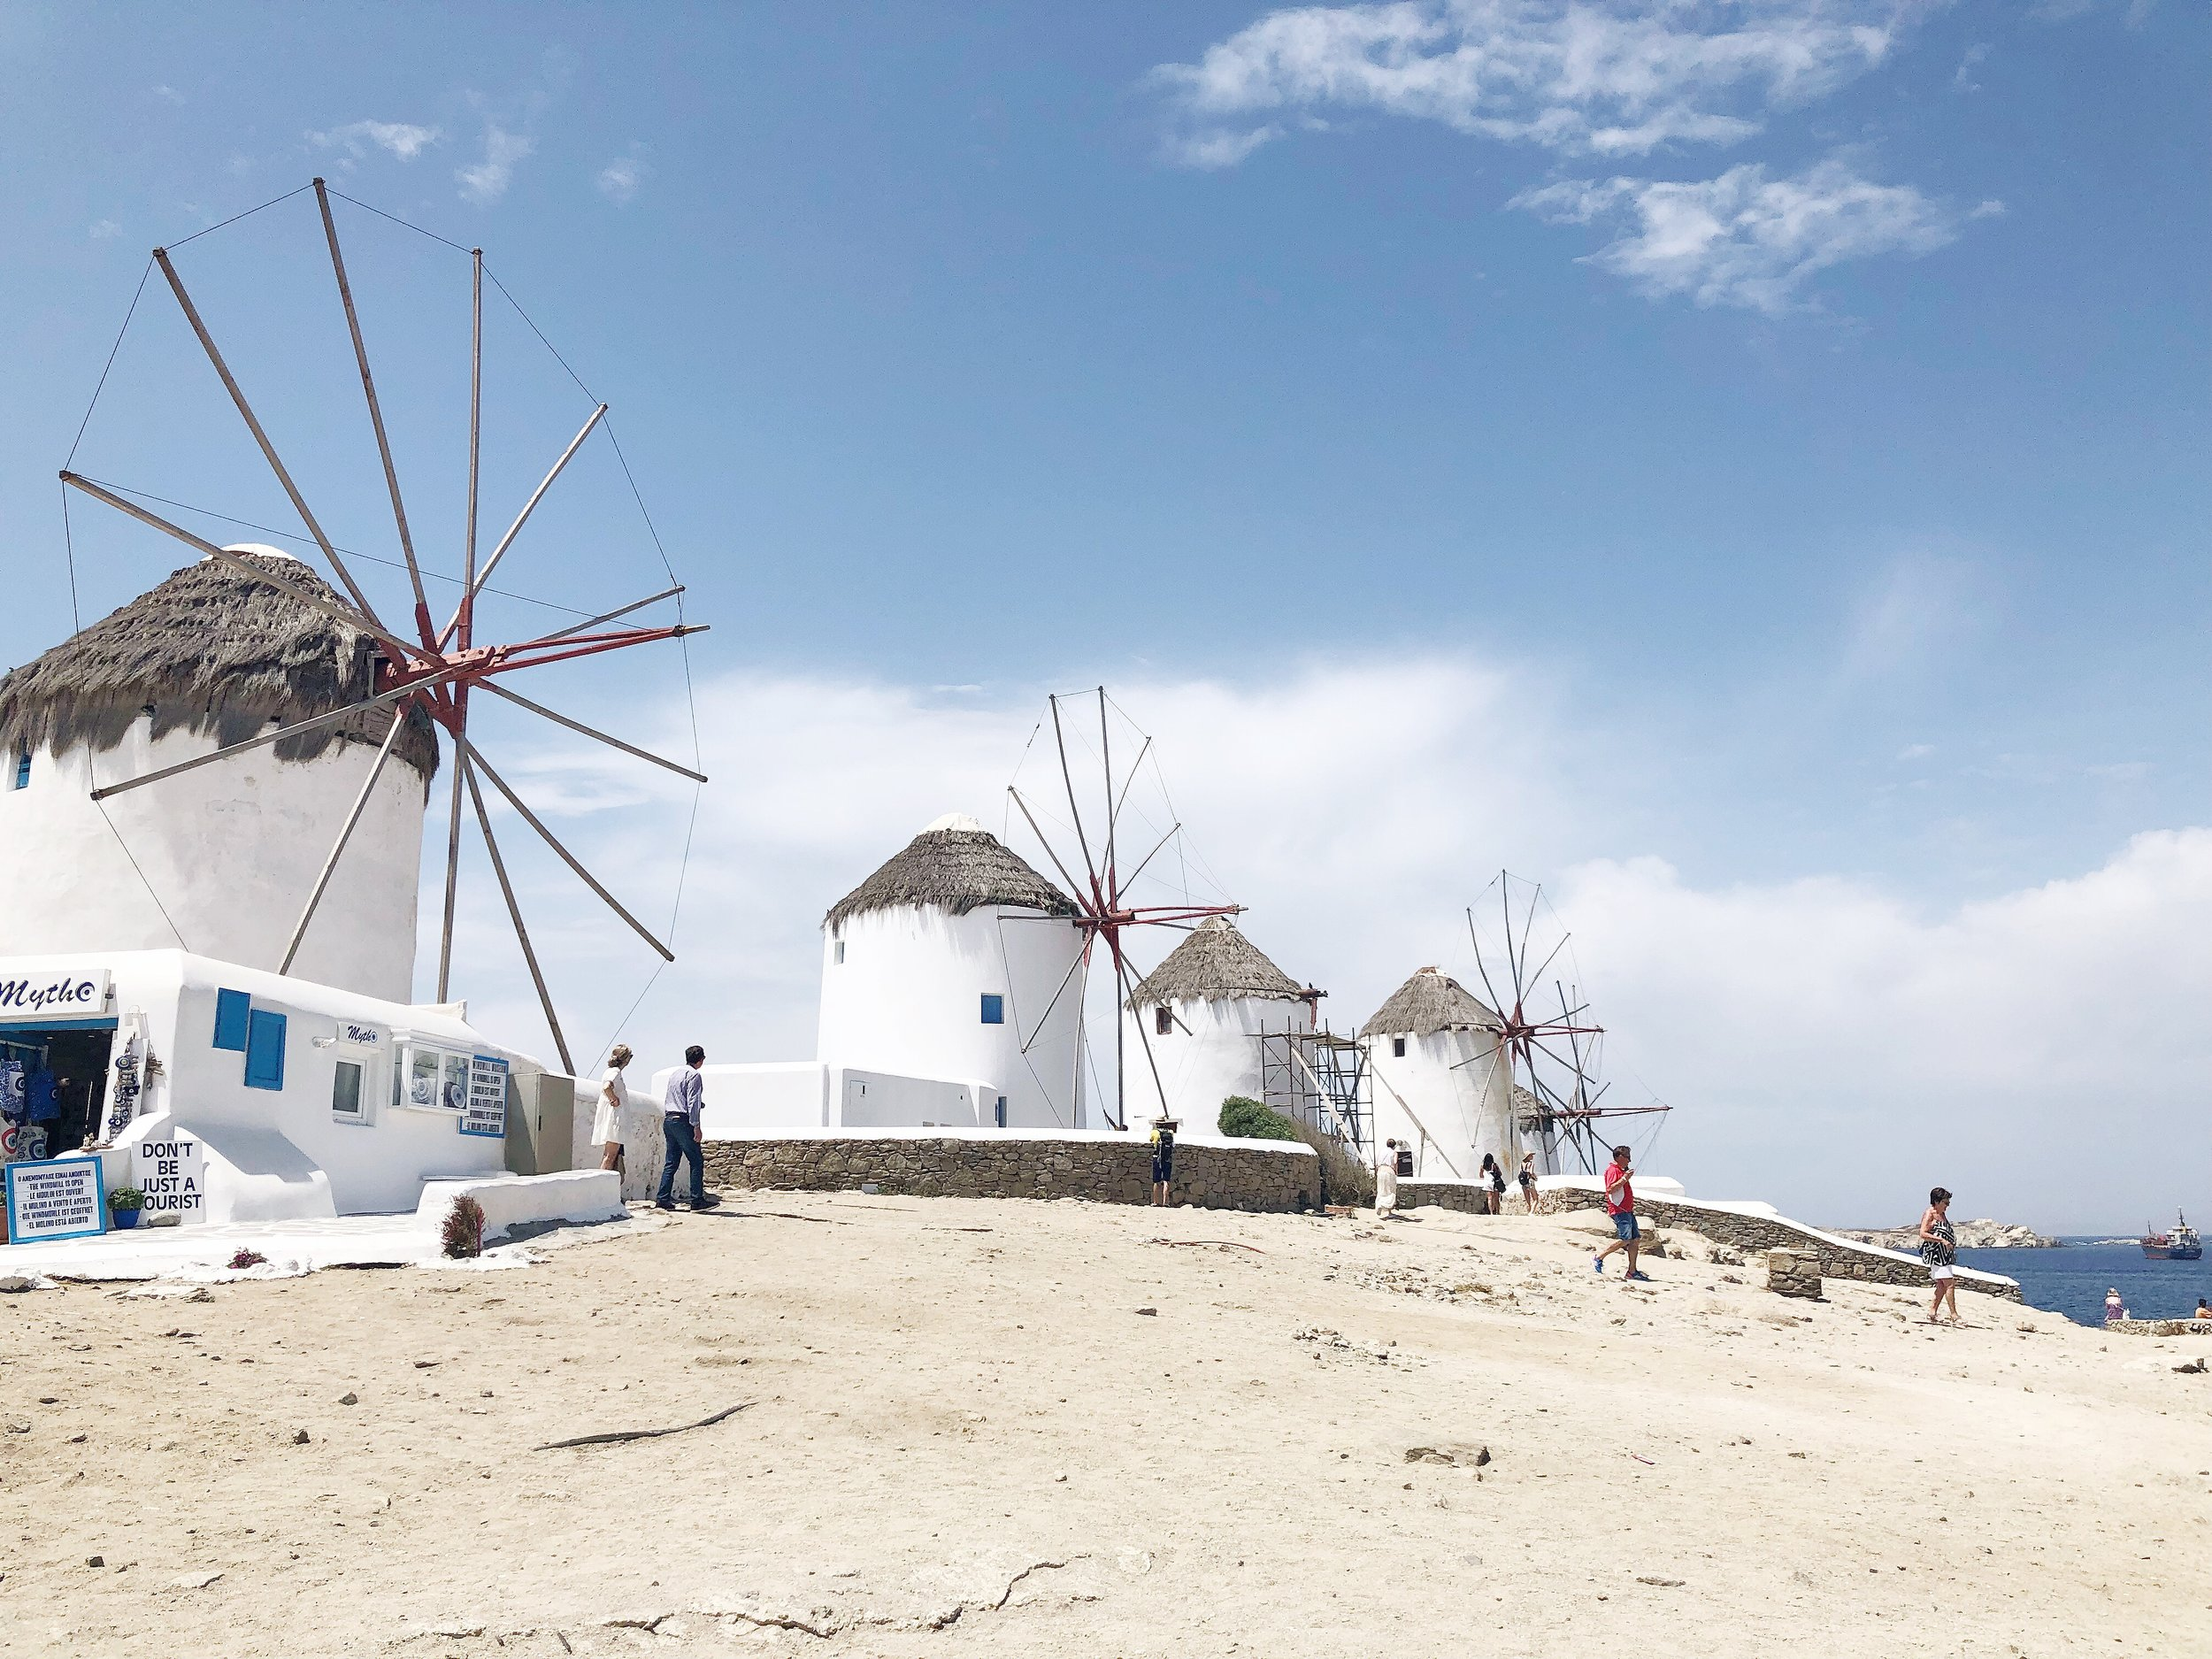 The windmills in Mykonos.